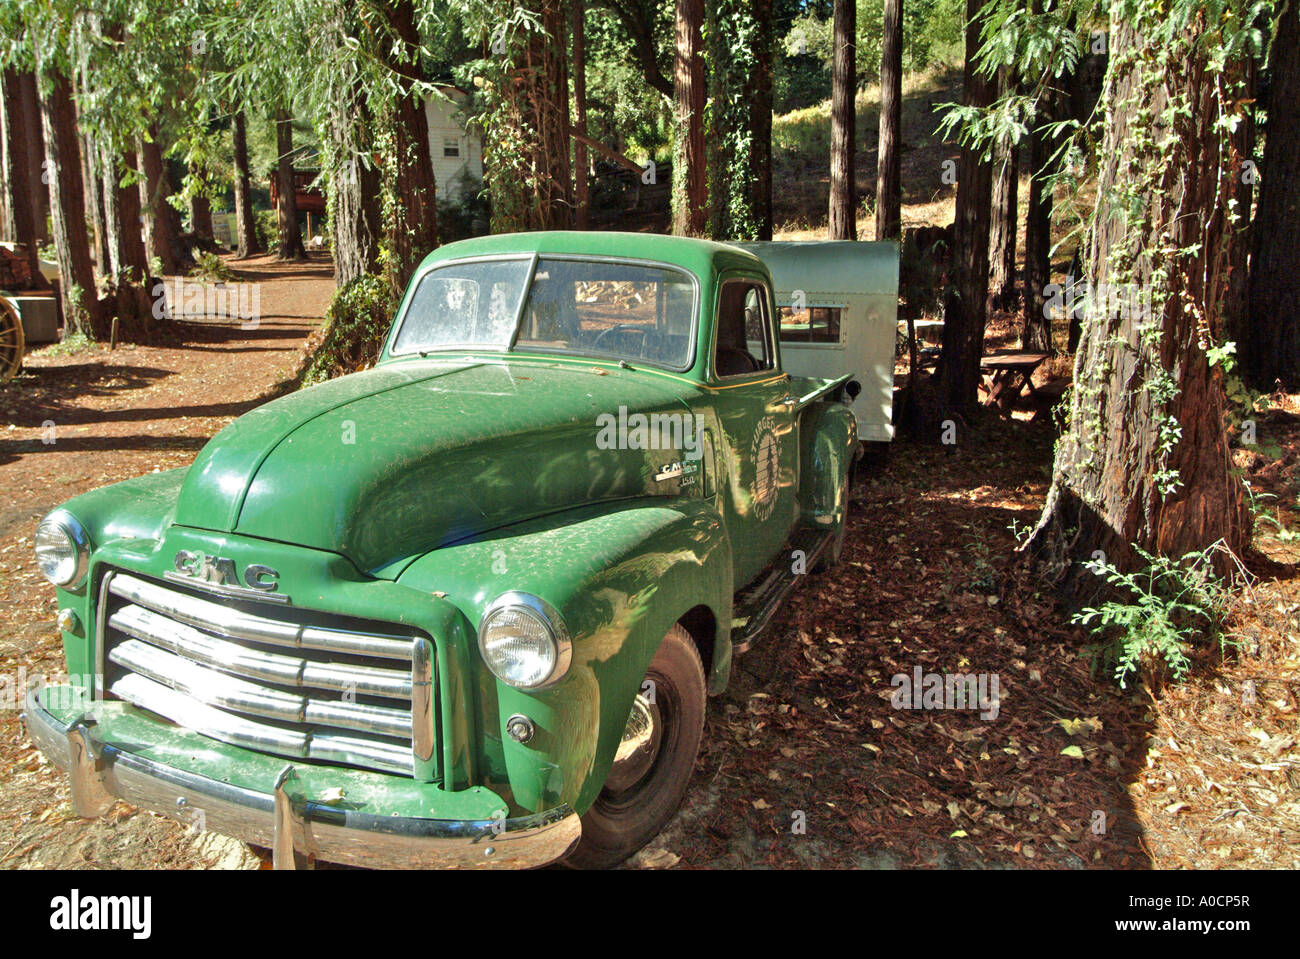 An old dusty antique green GMC 150 pickup truck with a trailer ...